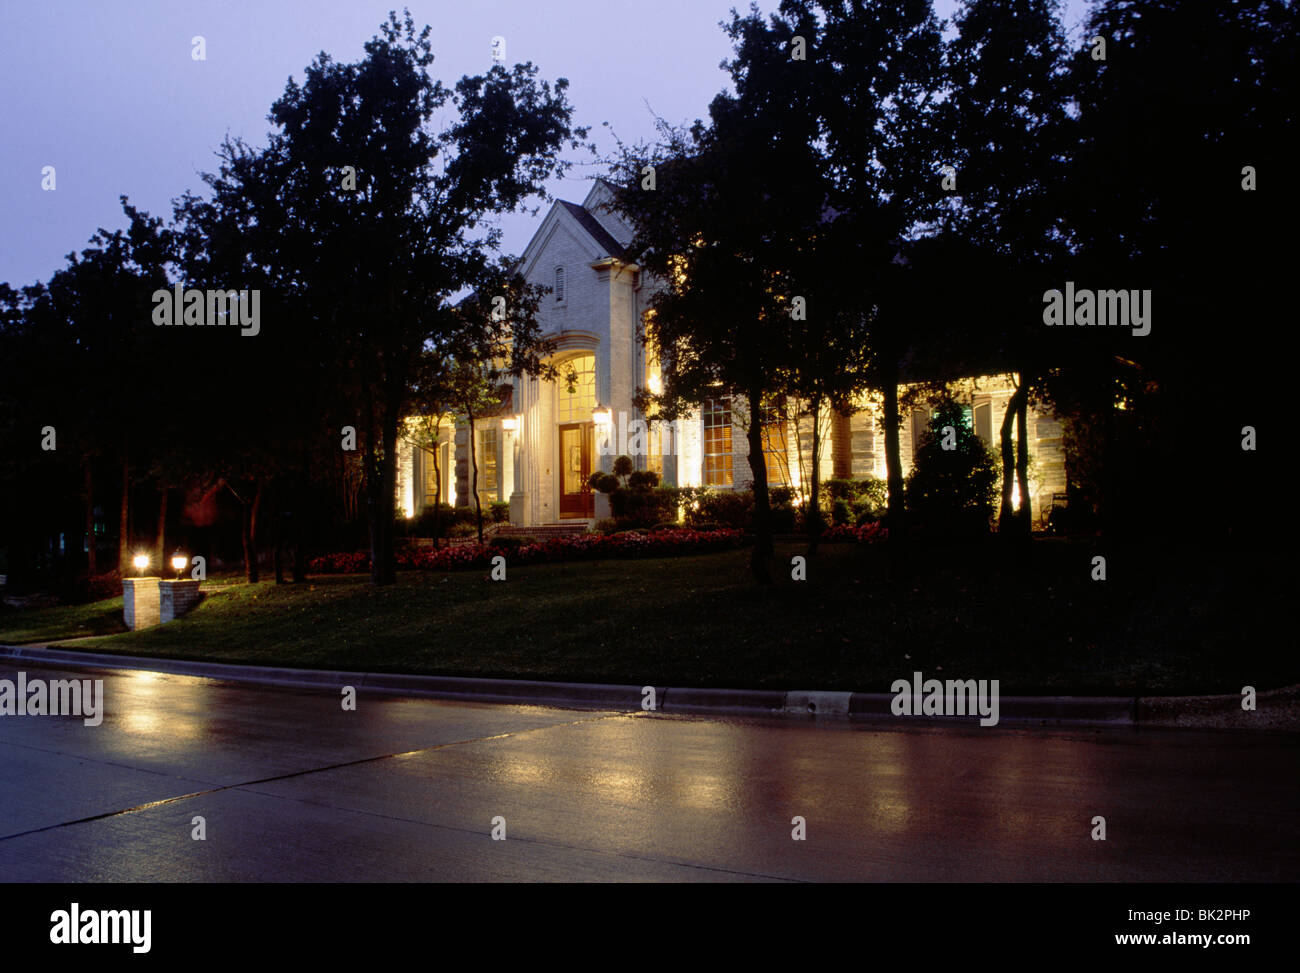 House Exterior in the Rain at Night - Stock Image